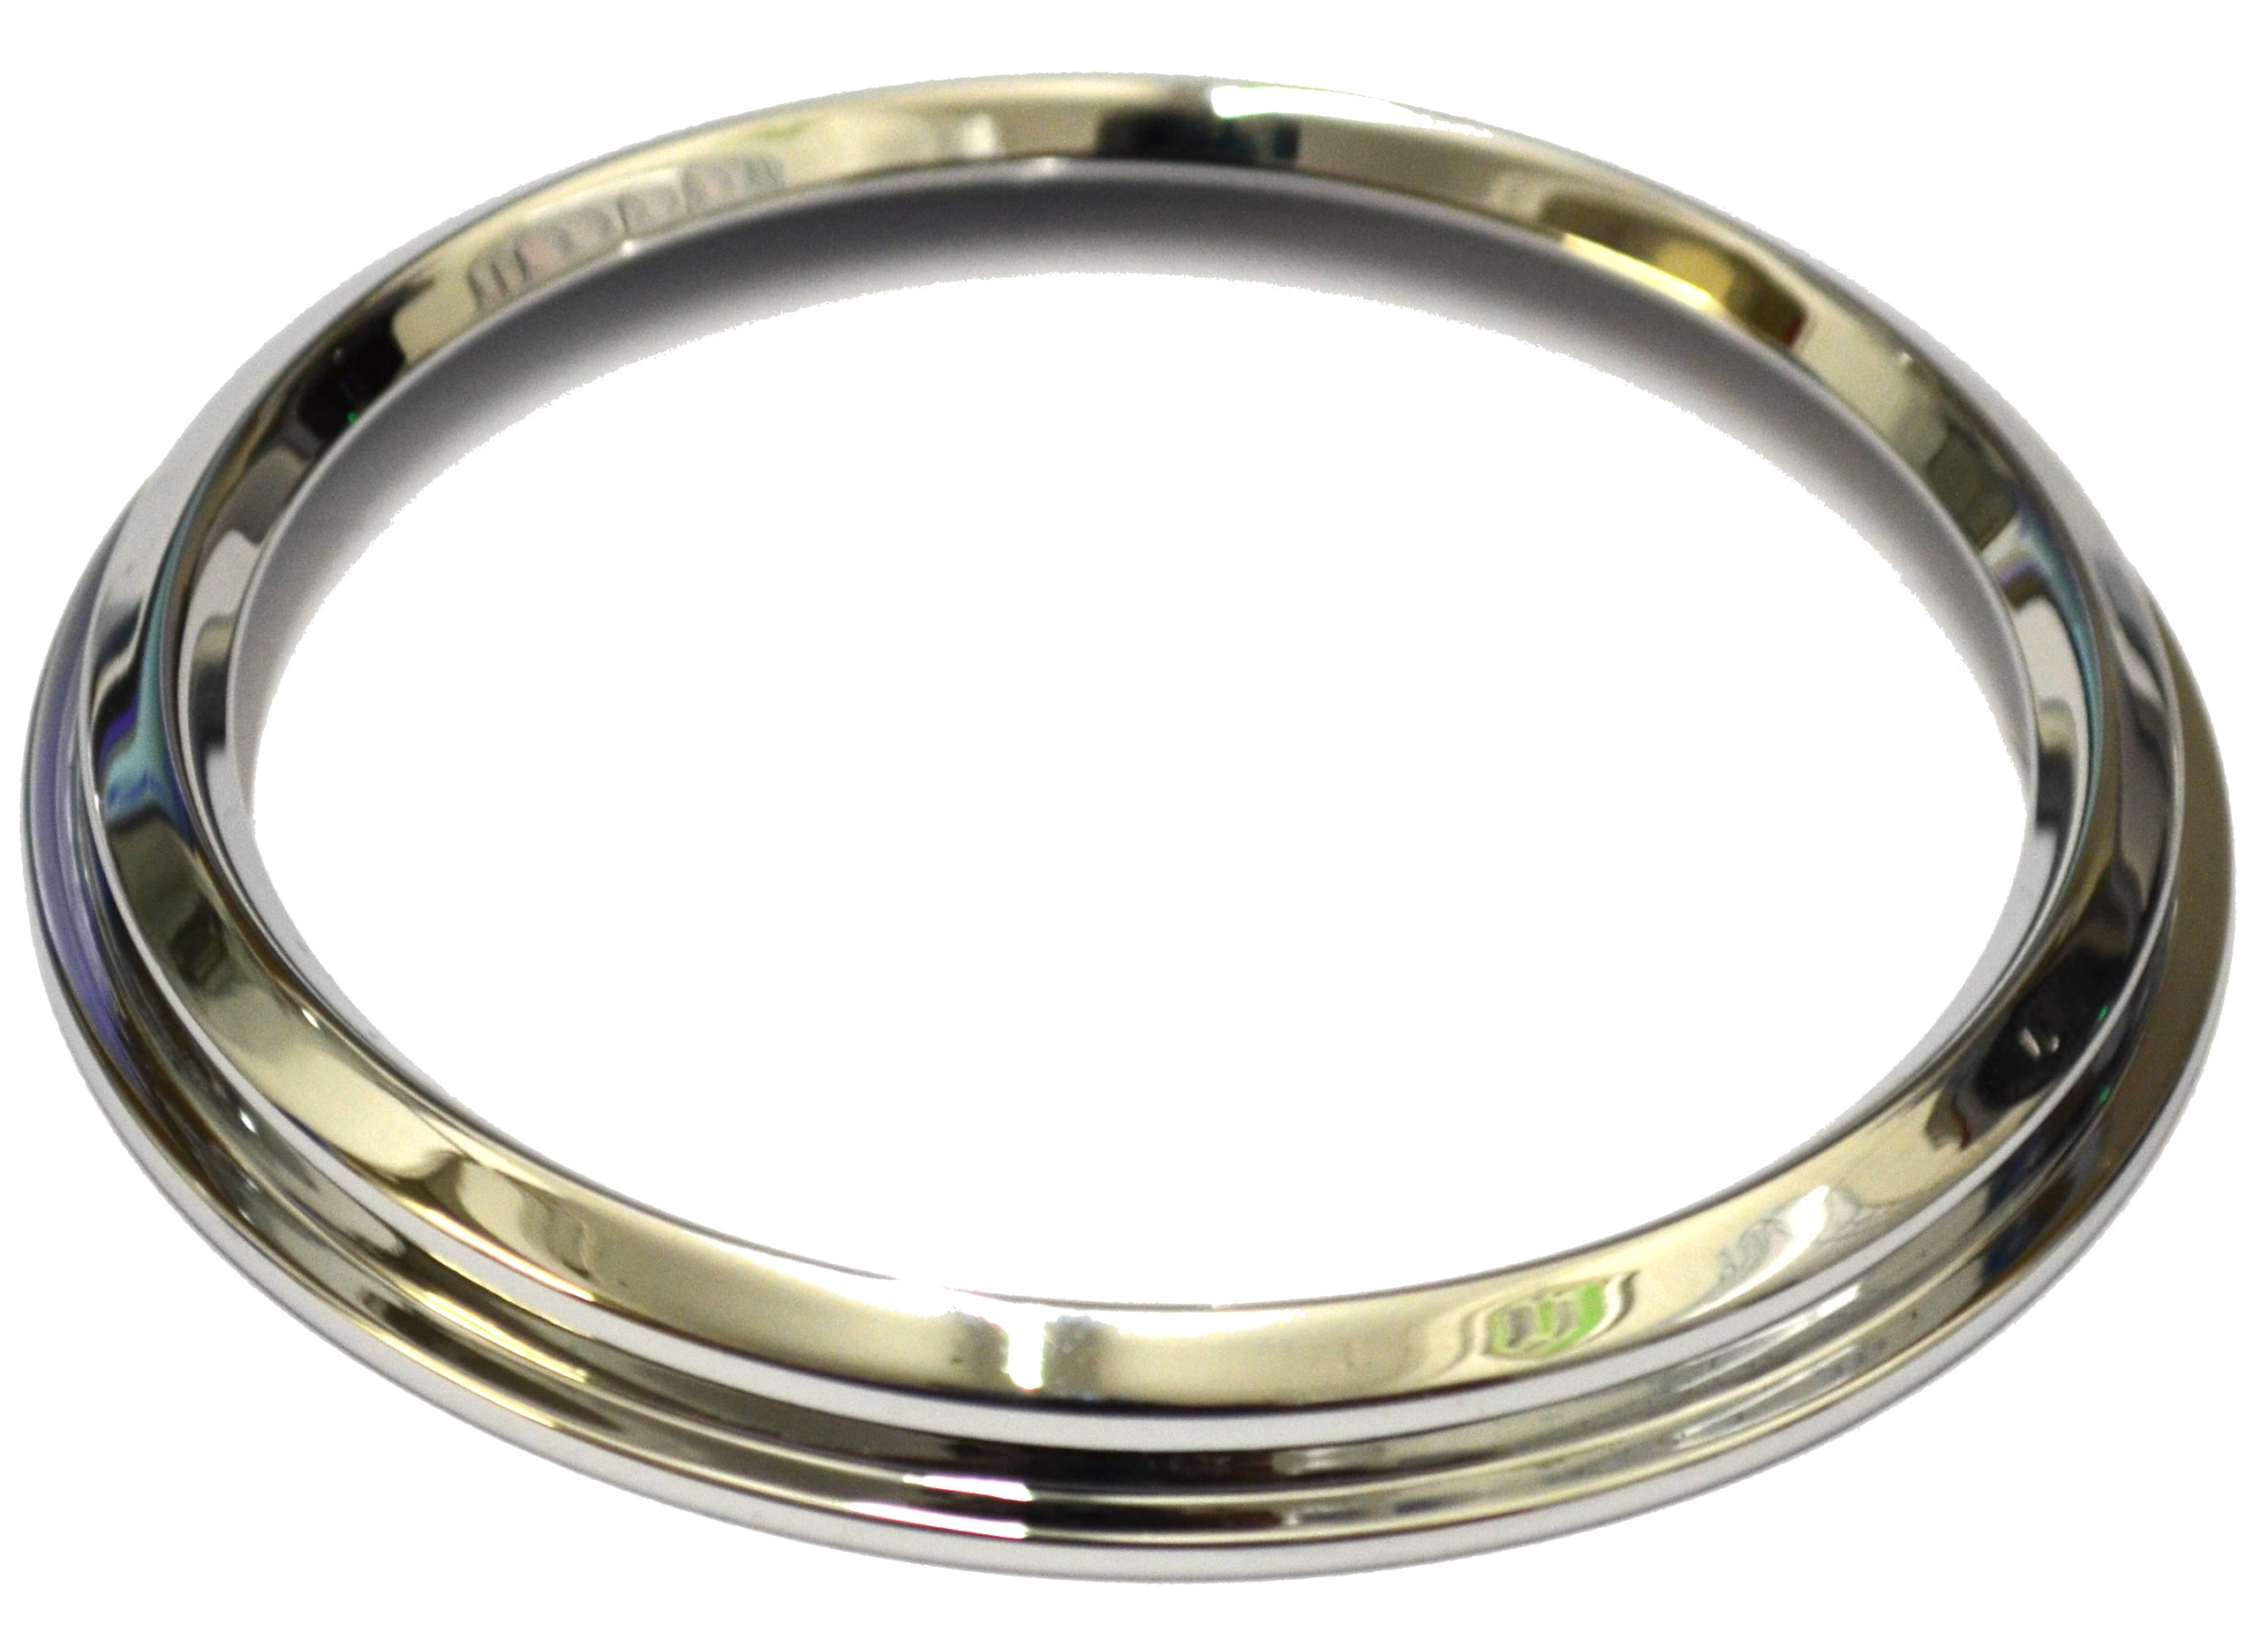 Bottom flange bezel